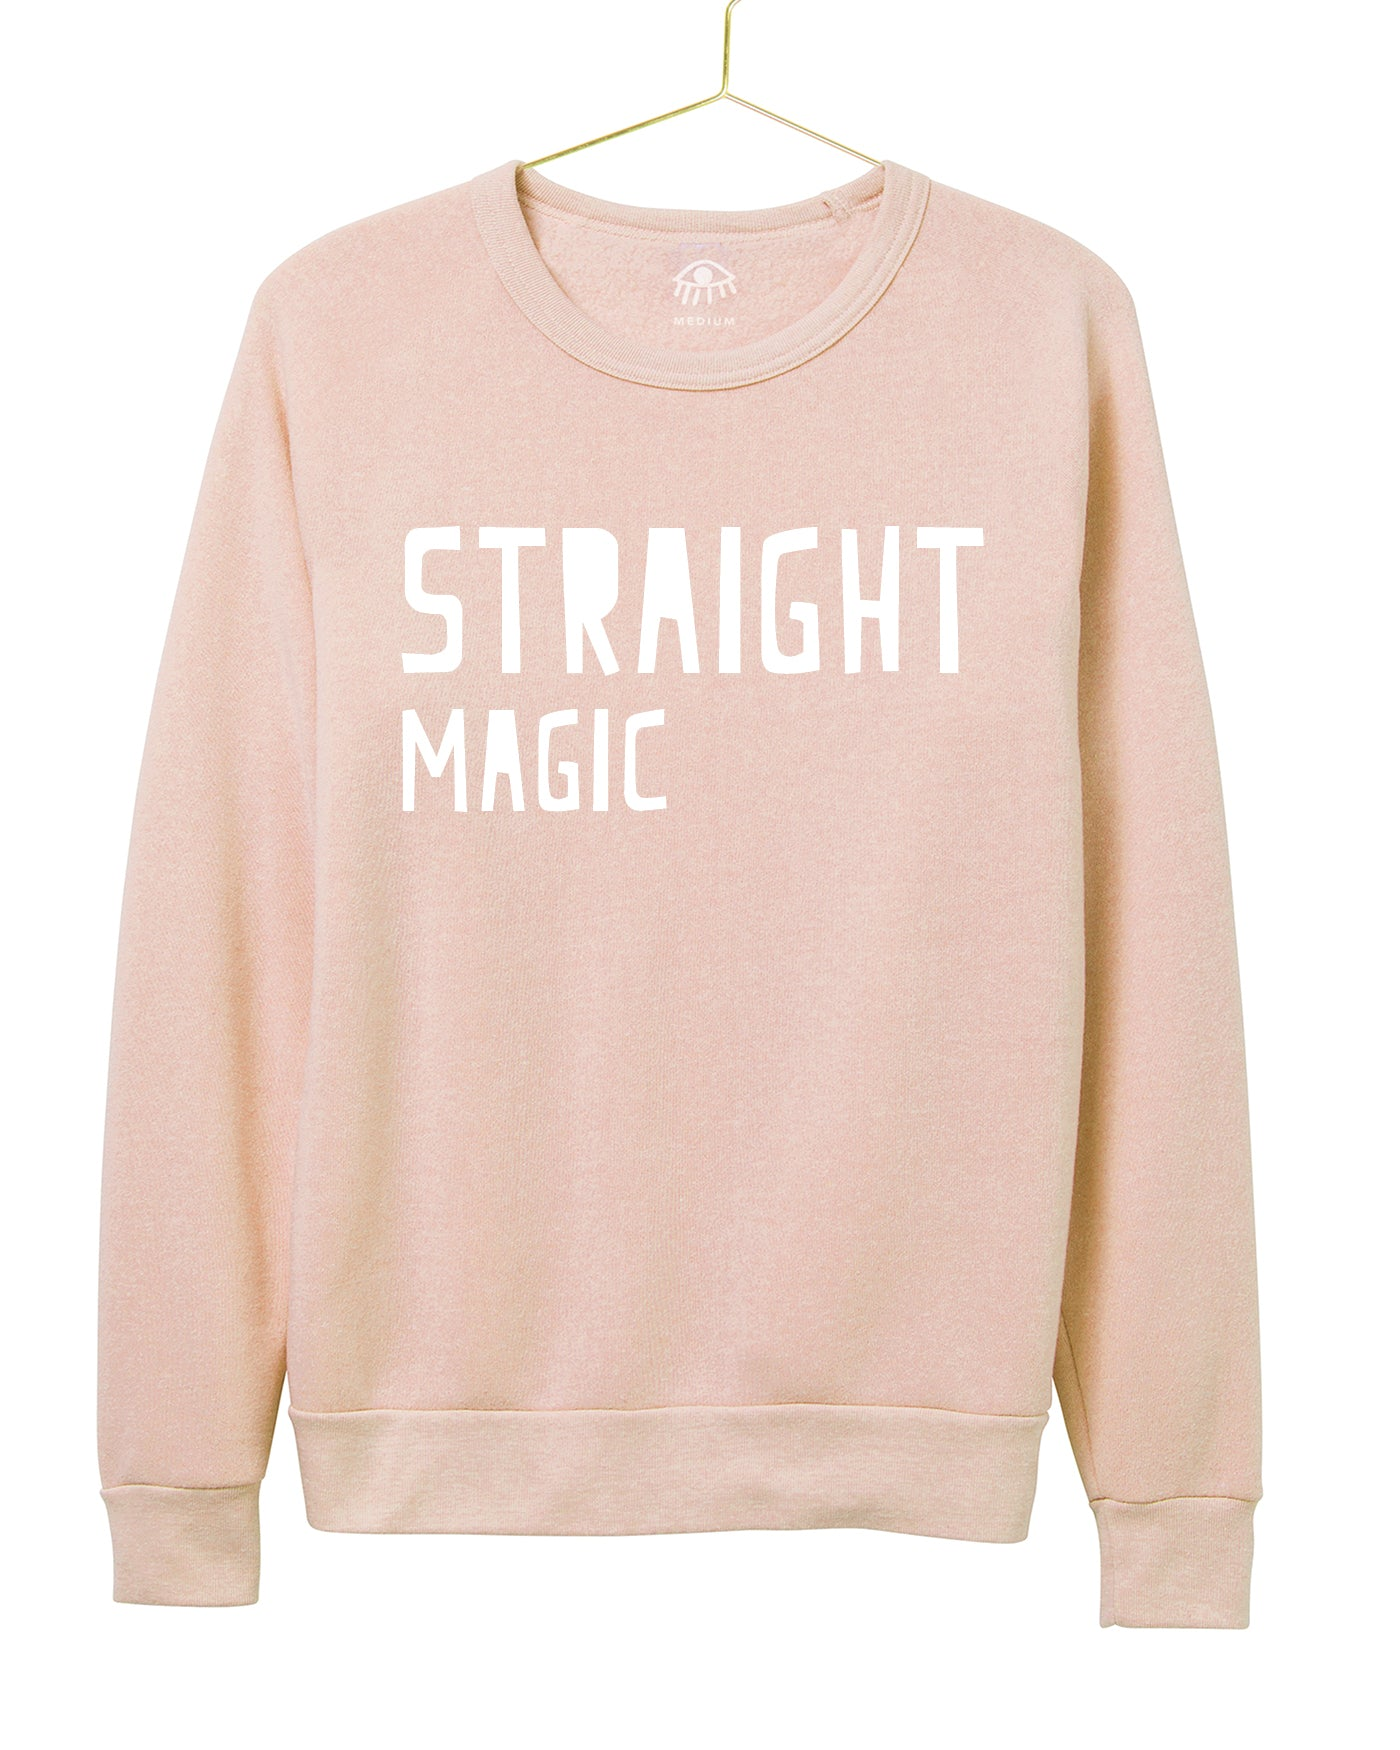 Straight Magic Women's Crewneck